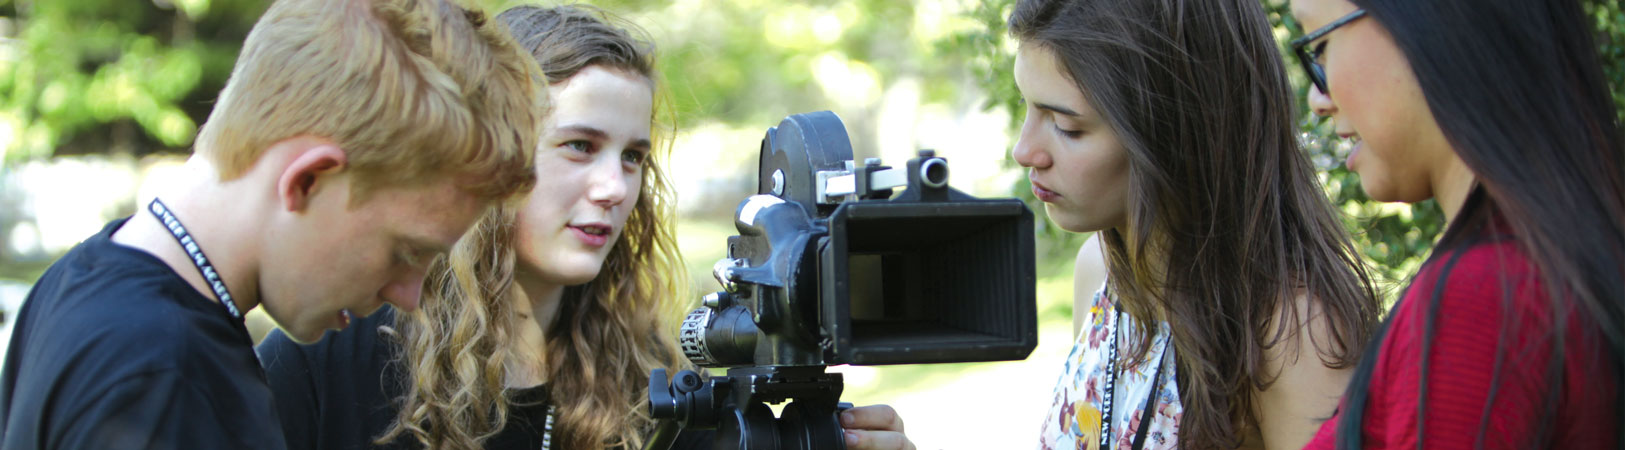 Four NYFA Students talking while working on filming a scene